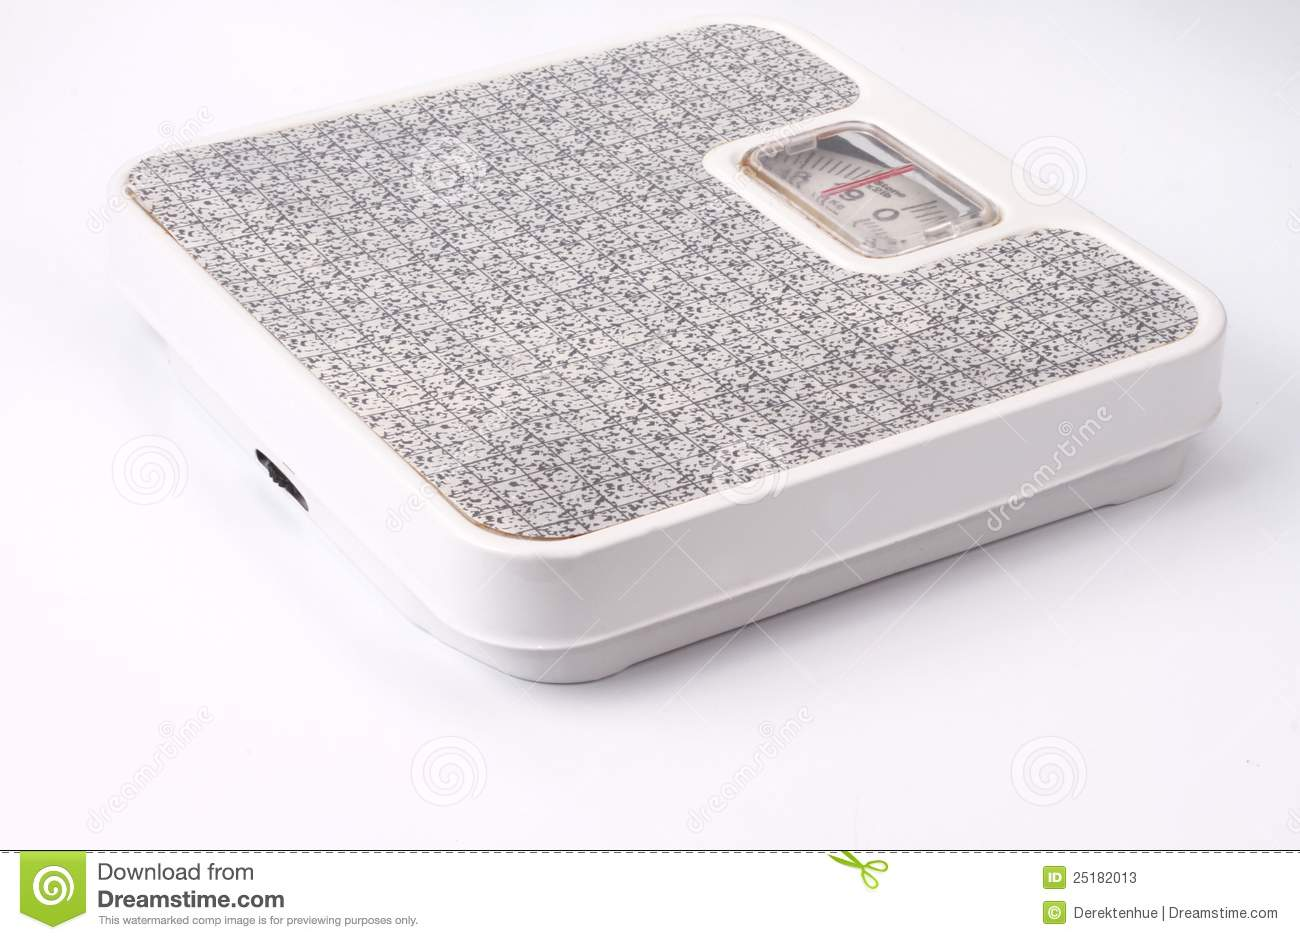 Bathroom Scale Stock Image 25182013